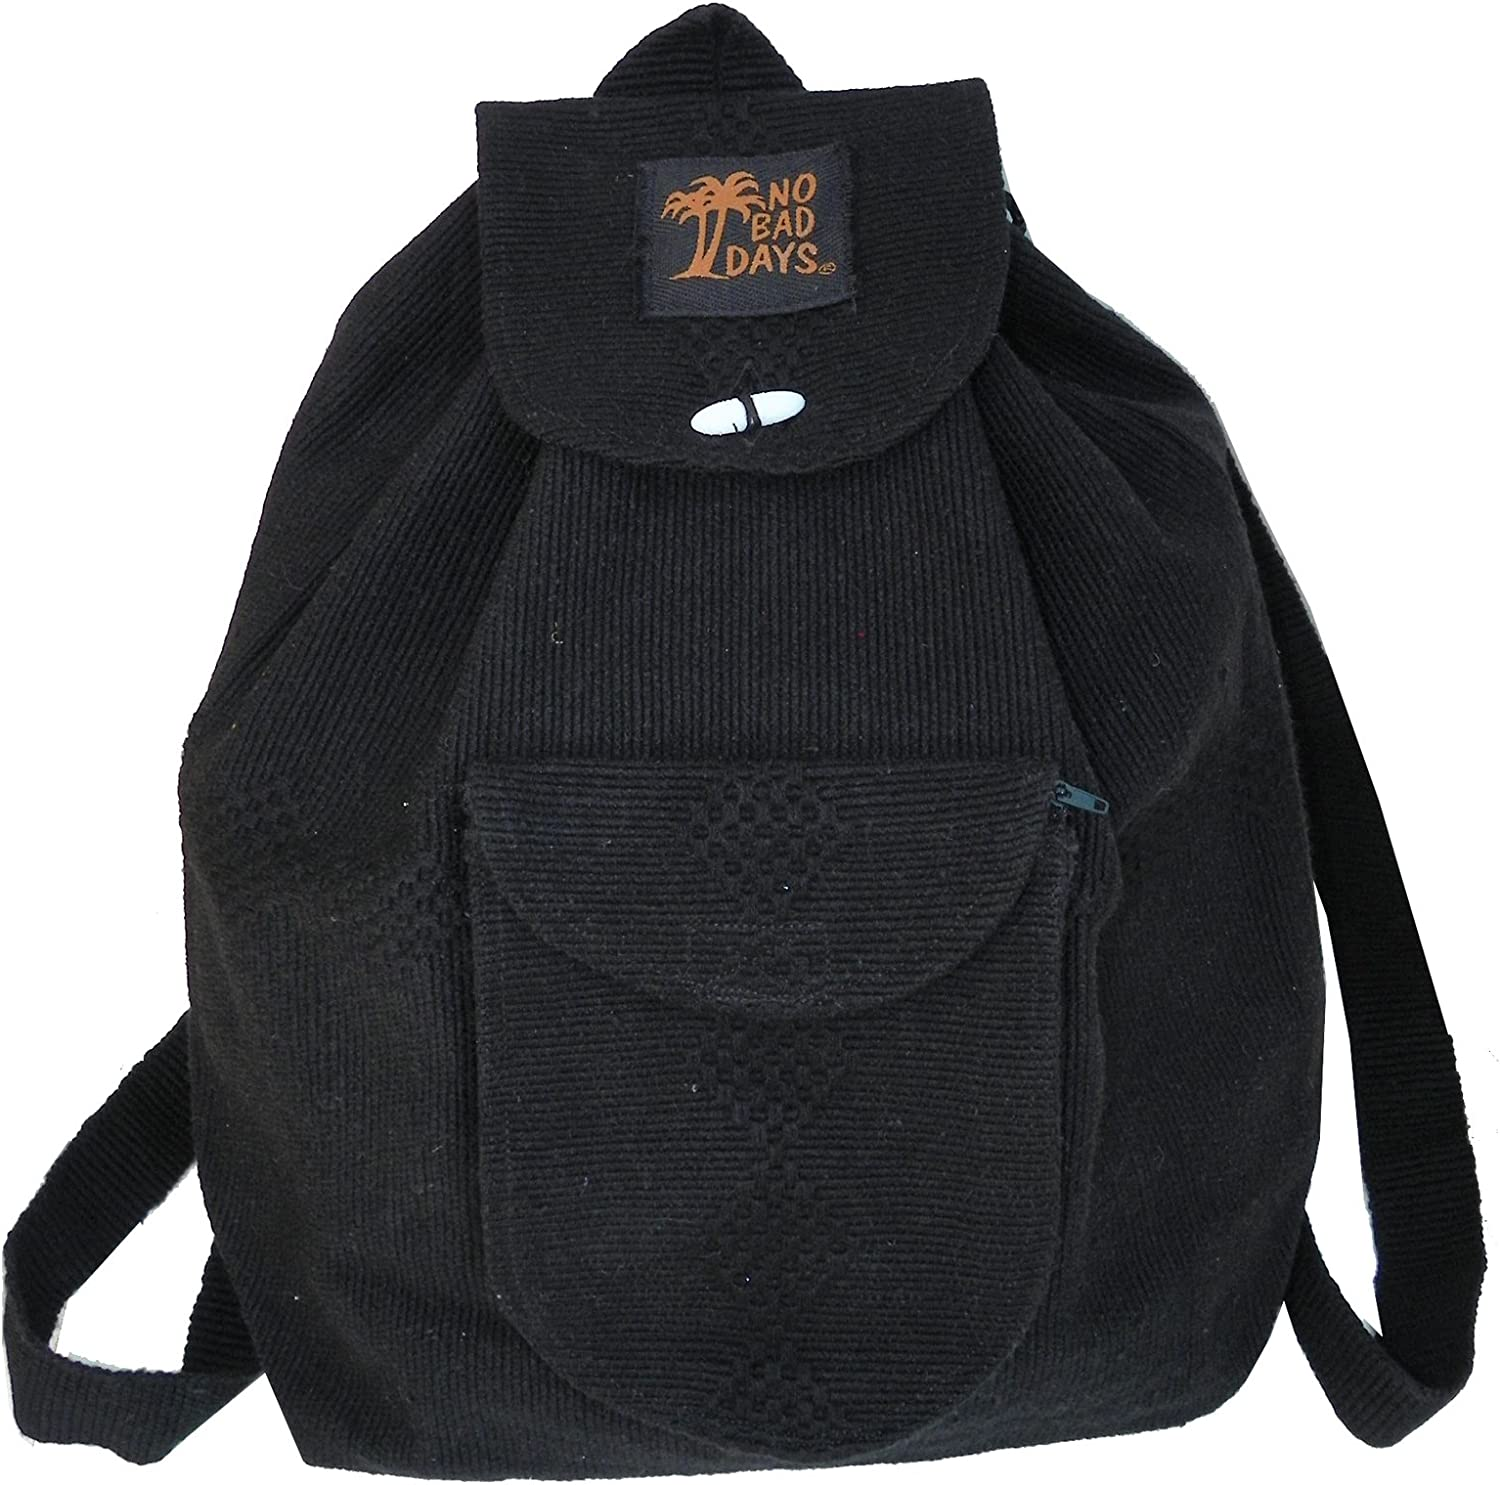 No Bad Days Baja Backpack Ethnic Woven Mexican Bag – Black – Medium